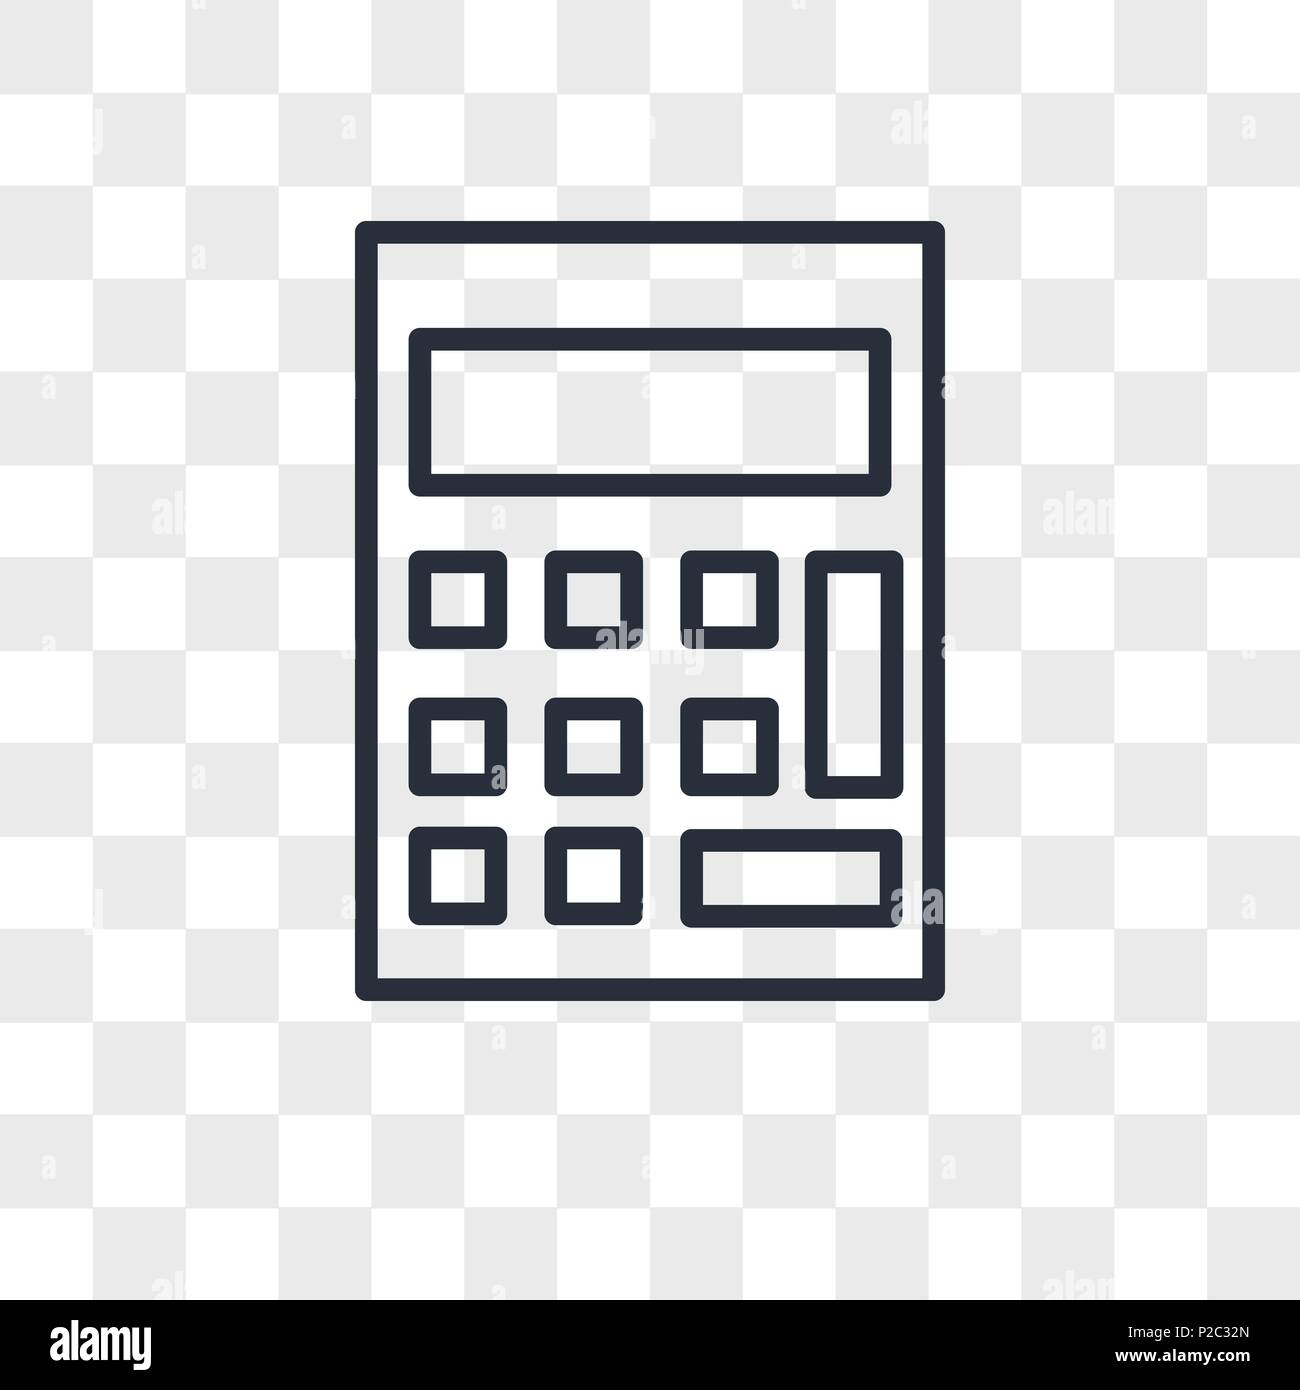 calculator vector icon isolated on transparent background